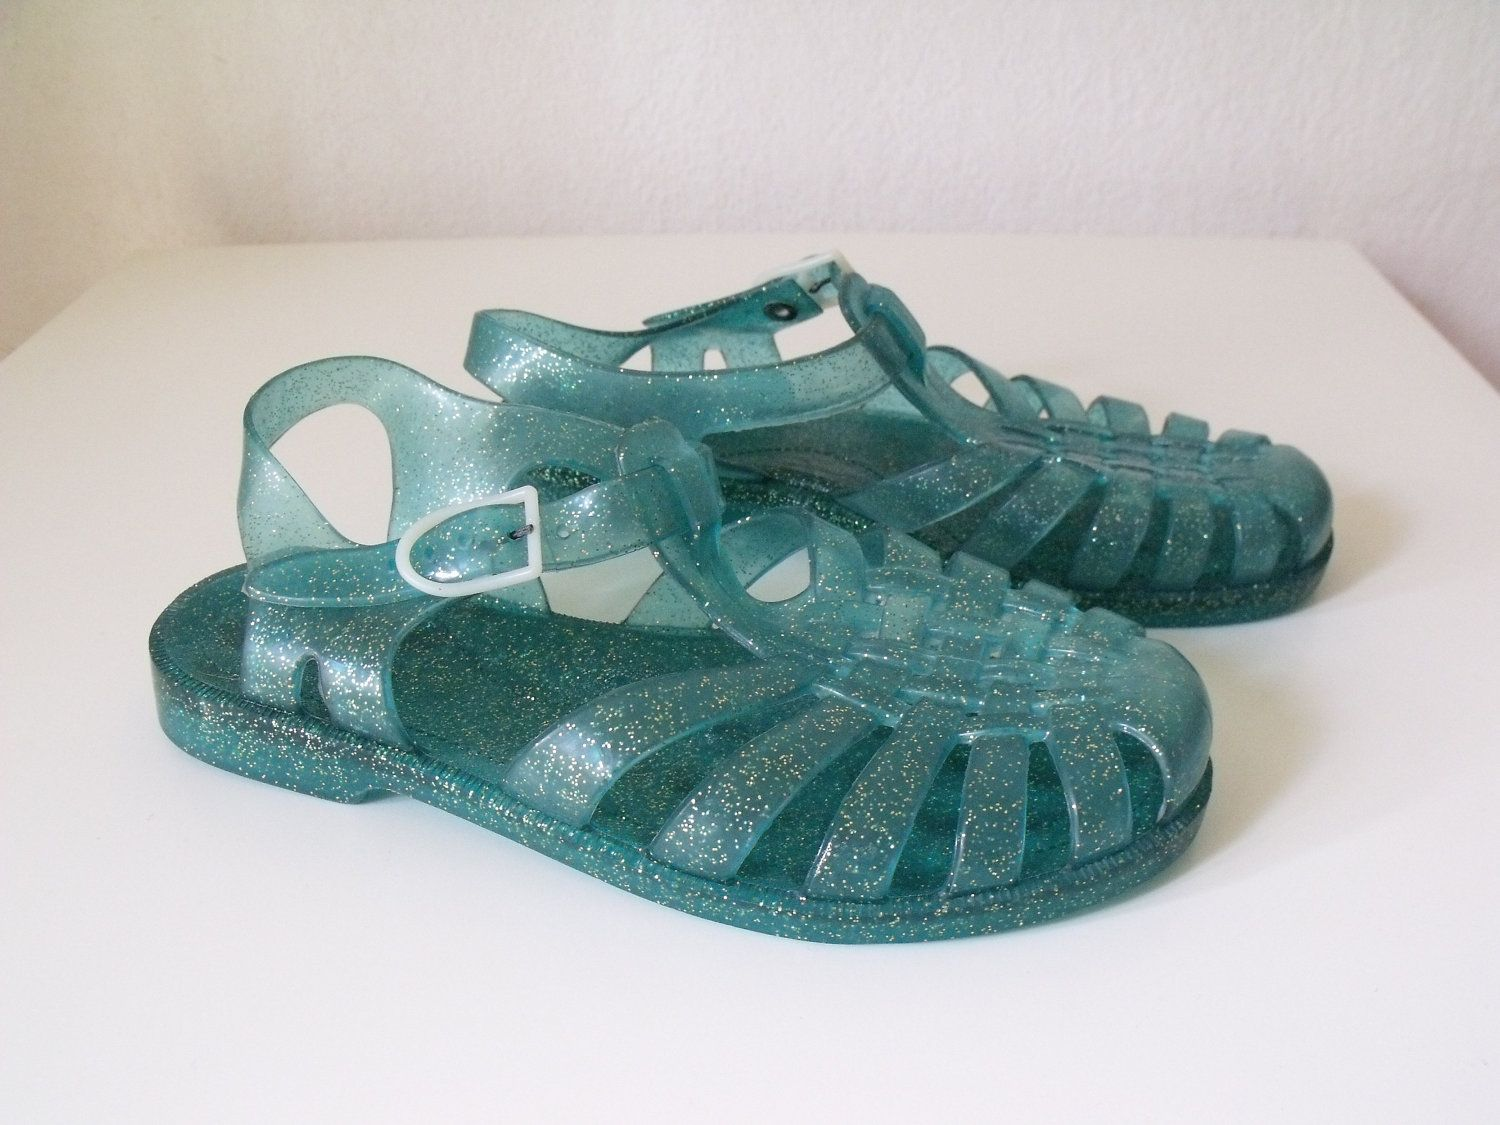 905f04414af7 Vintage Jelly Shoes - 1980 s Sandals - Beach Sandals - Turquoise ...